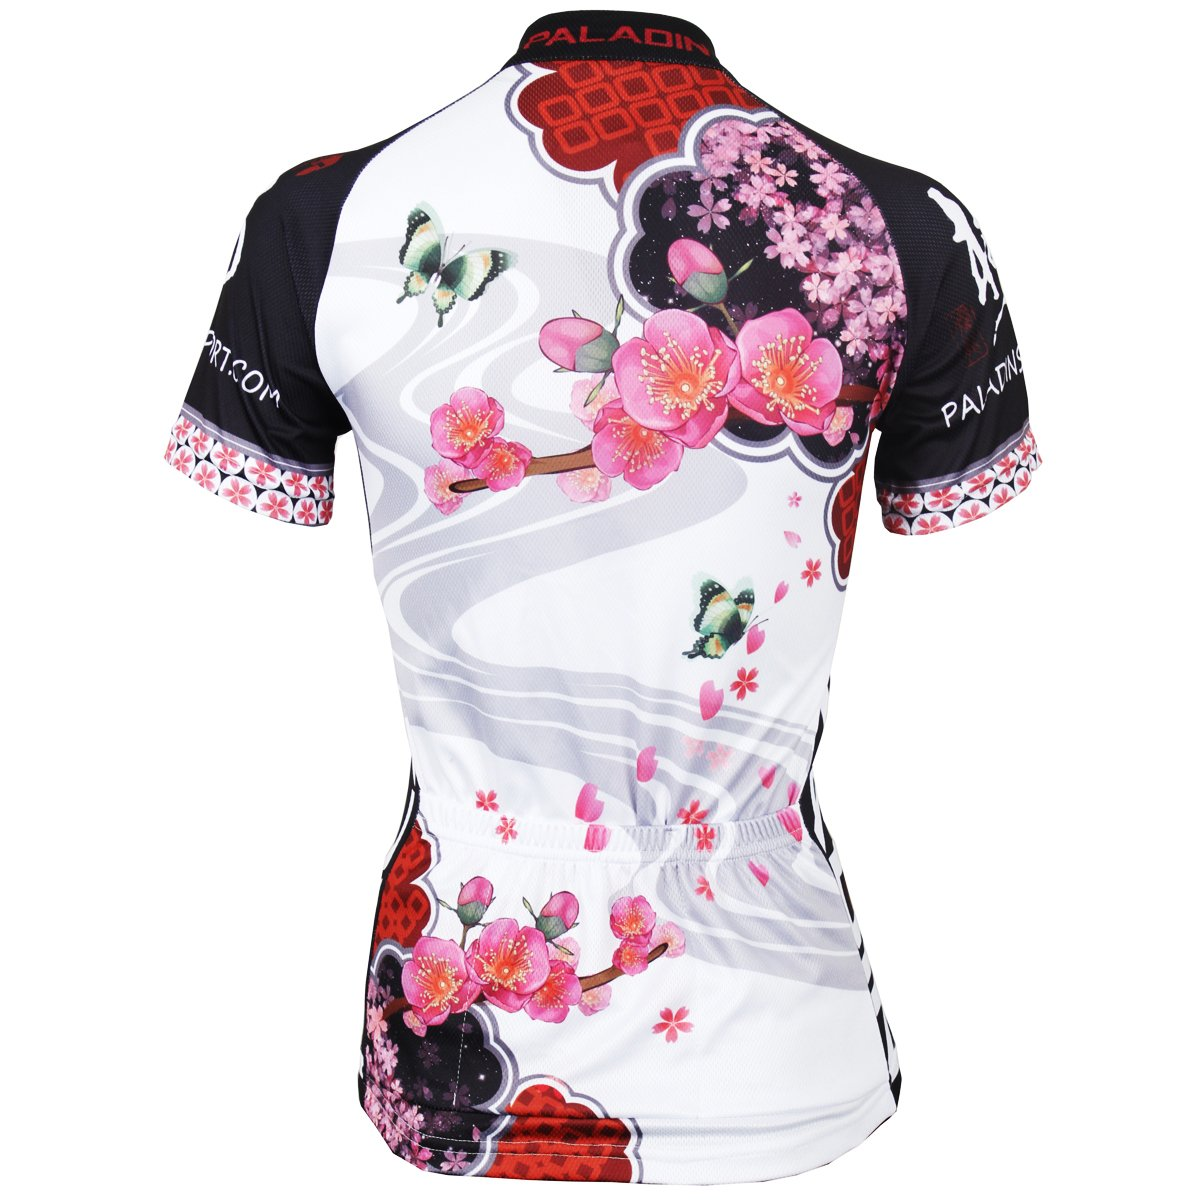 251b09be5 Amazon.com   Paladin Cycling Jersey for Women Short Sleeve Plum Flower  Pattern Bike Shirt   Sports   Outdoors